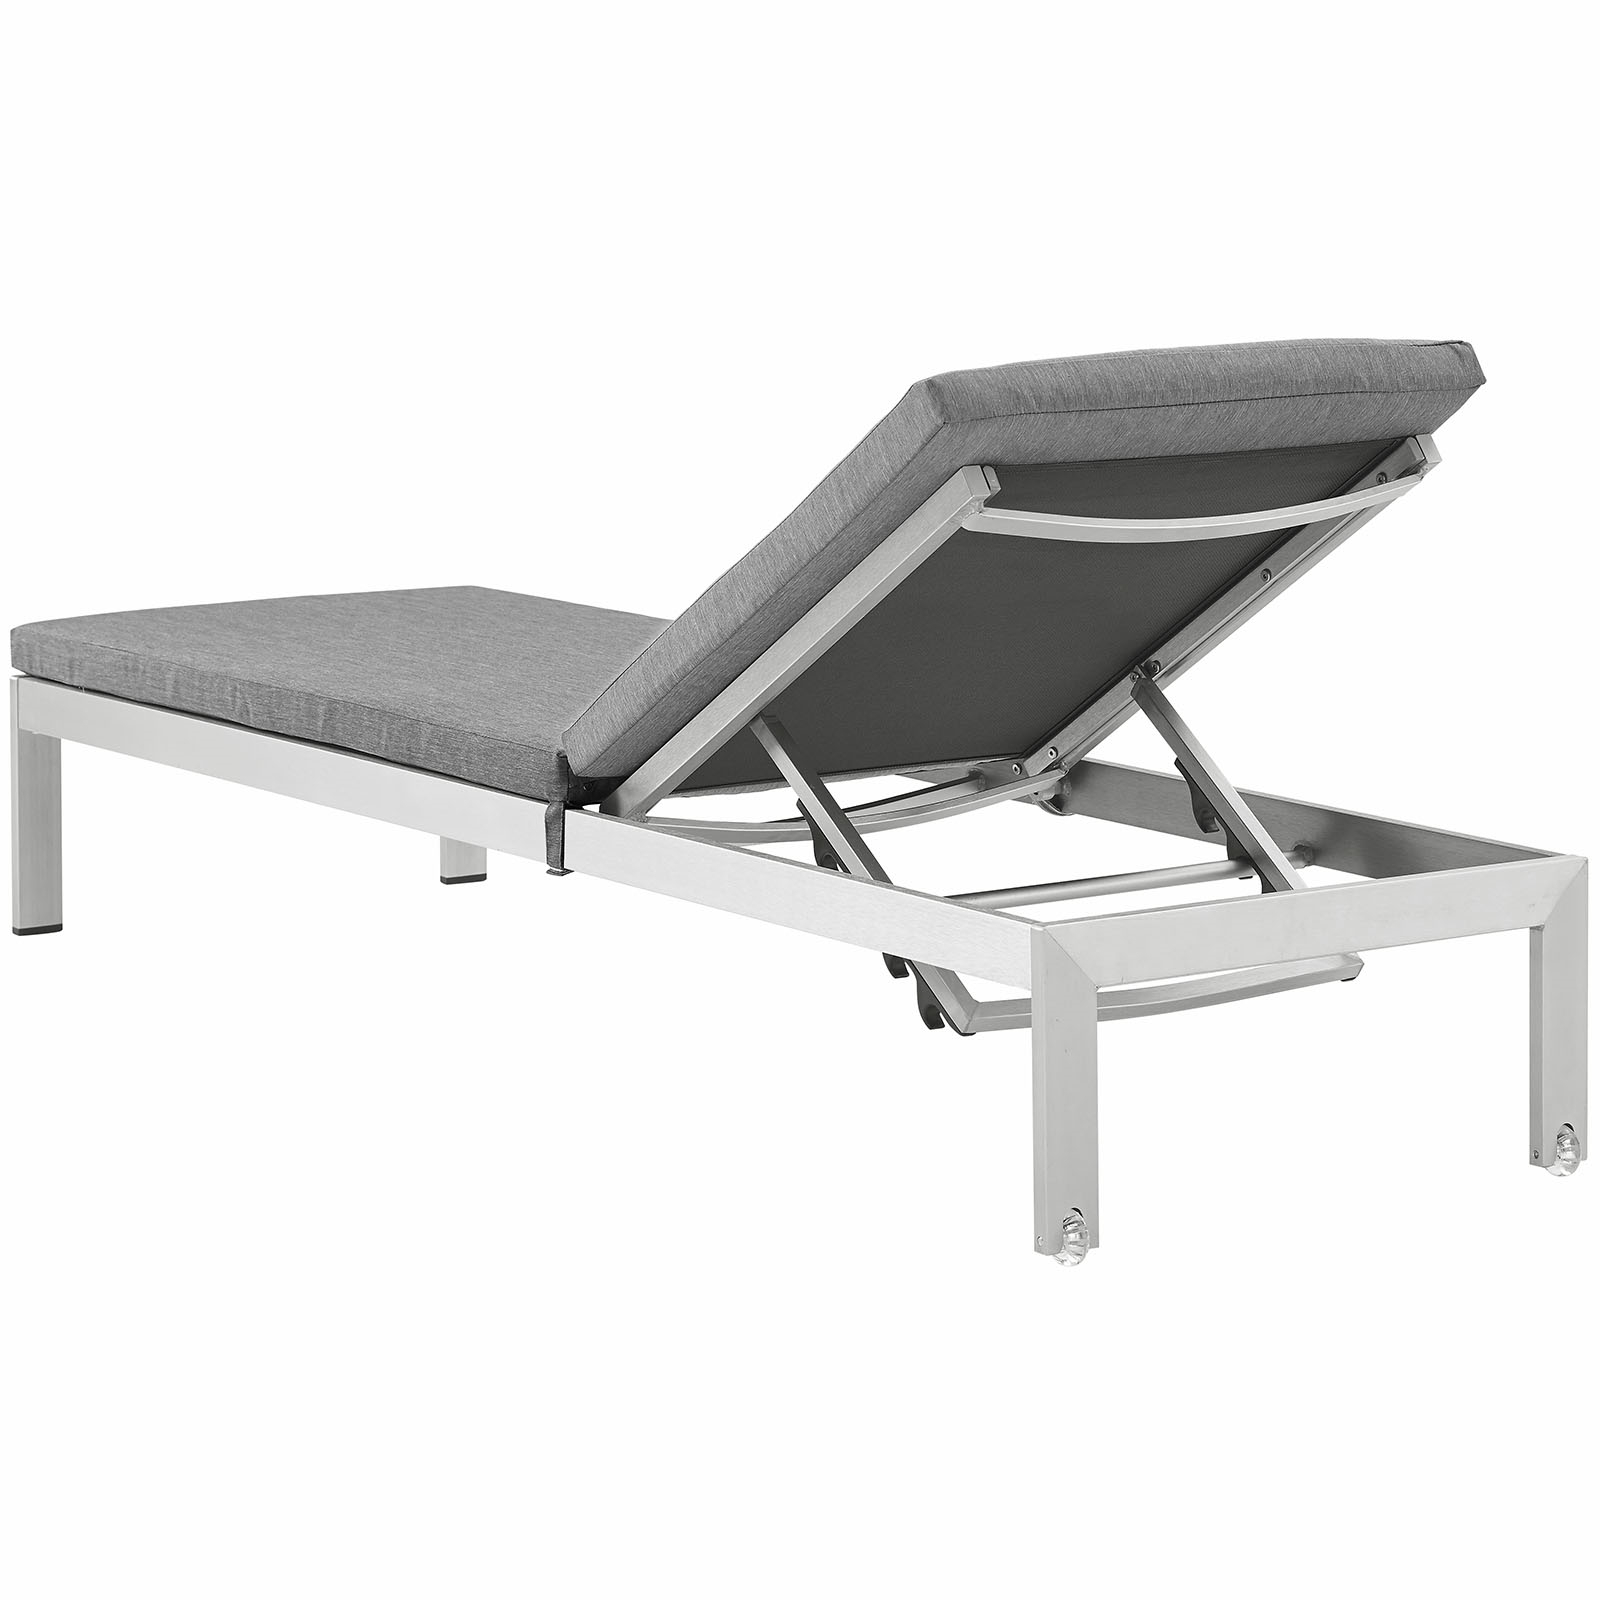 Shore Aluminum Outdoor Chaise Lounges With Fashionable Shore Outdoor Patio Aluminum Chaise With Cushions (View 18 of 25)